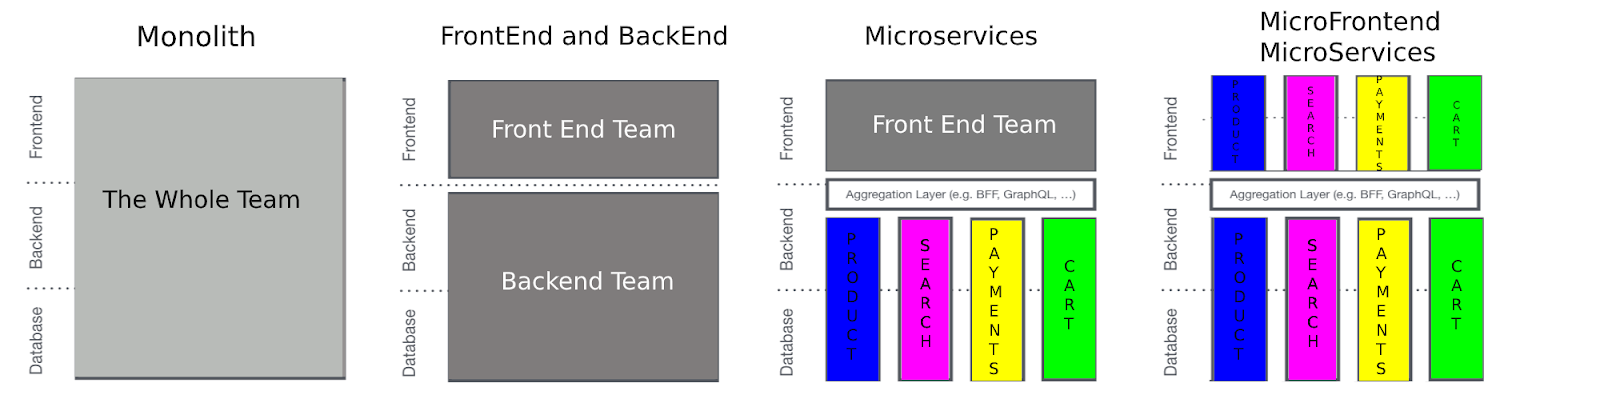 Micro Frontends with Microservices